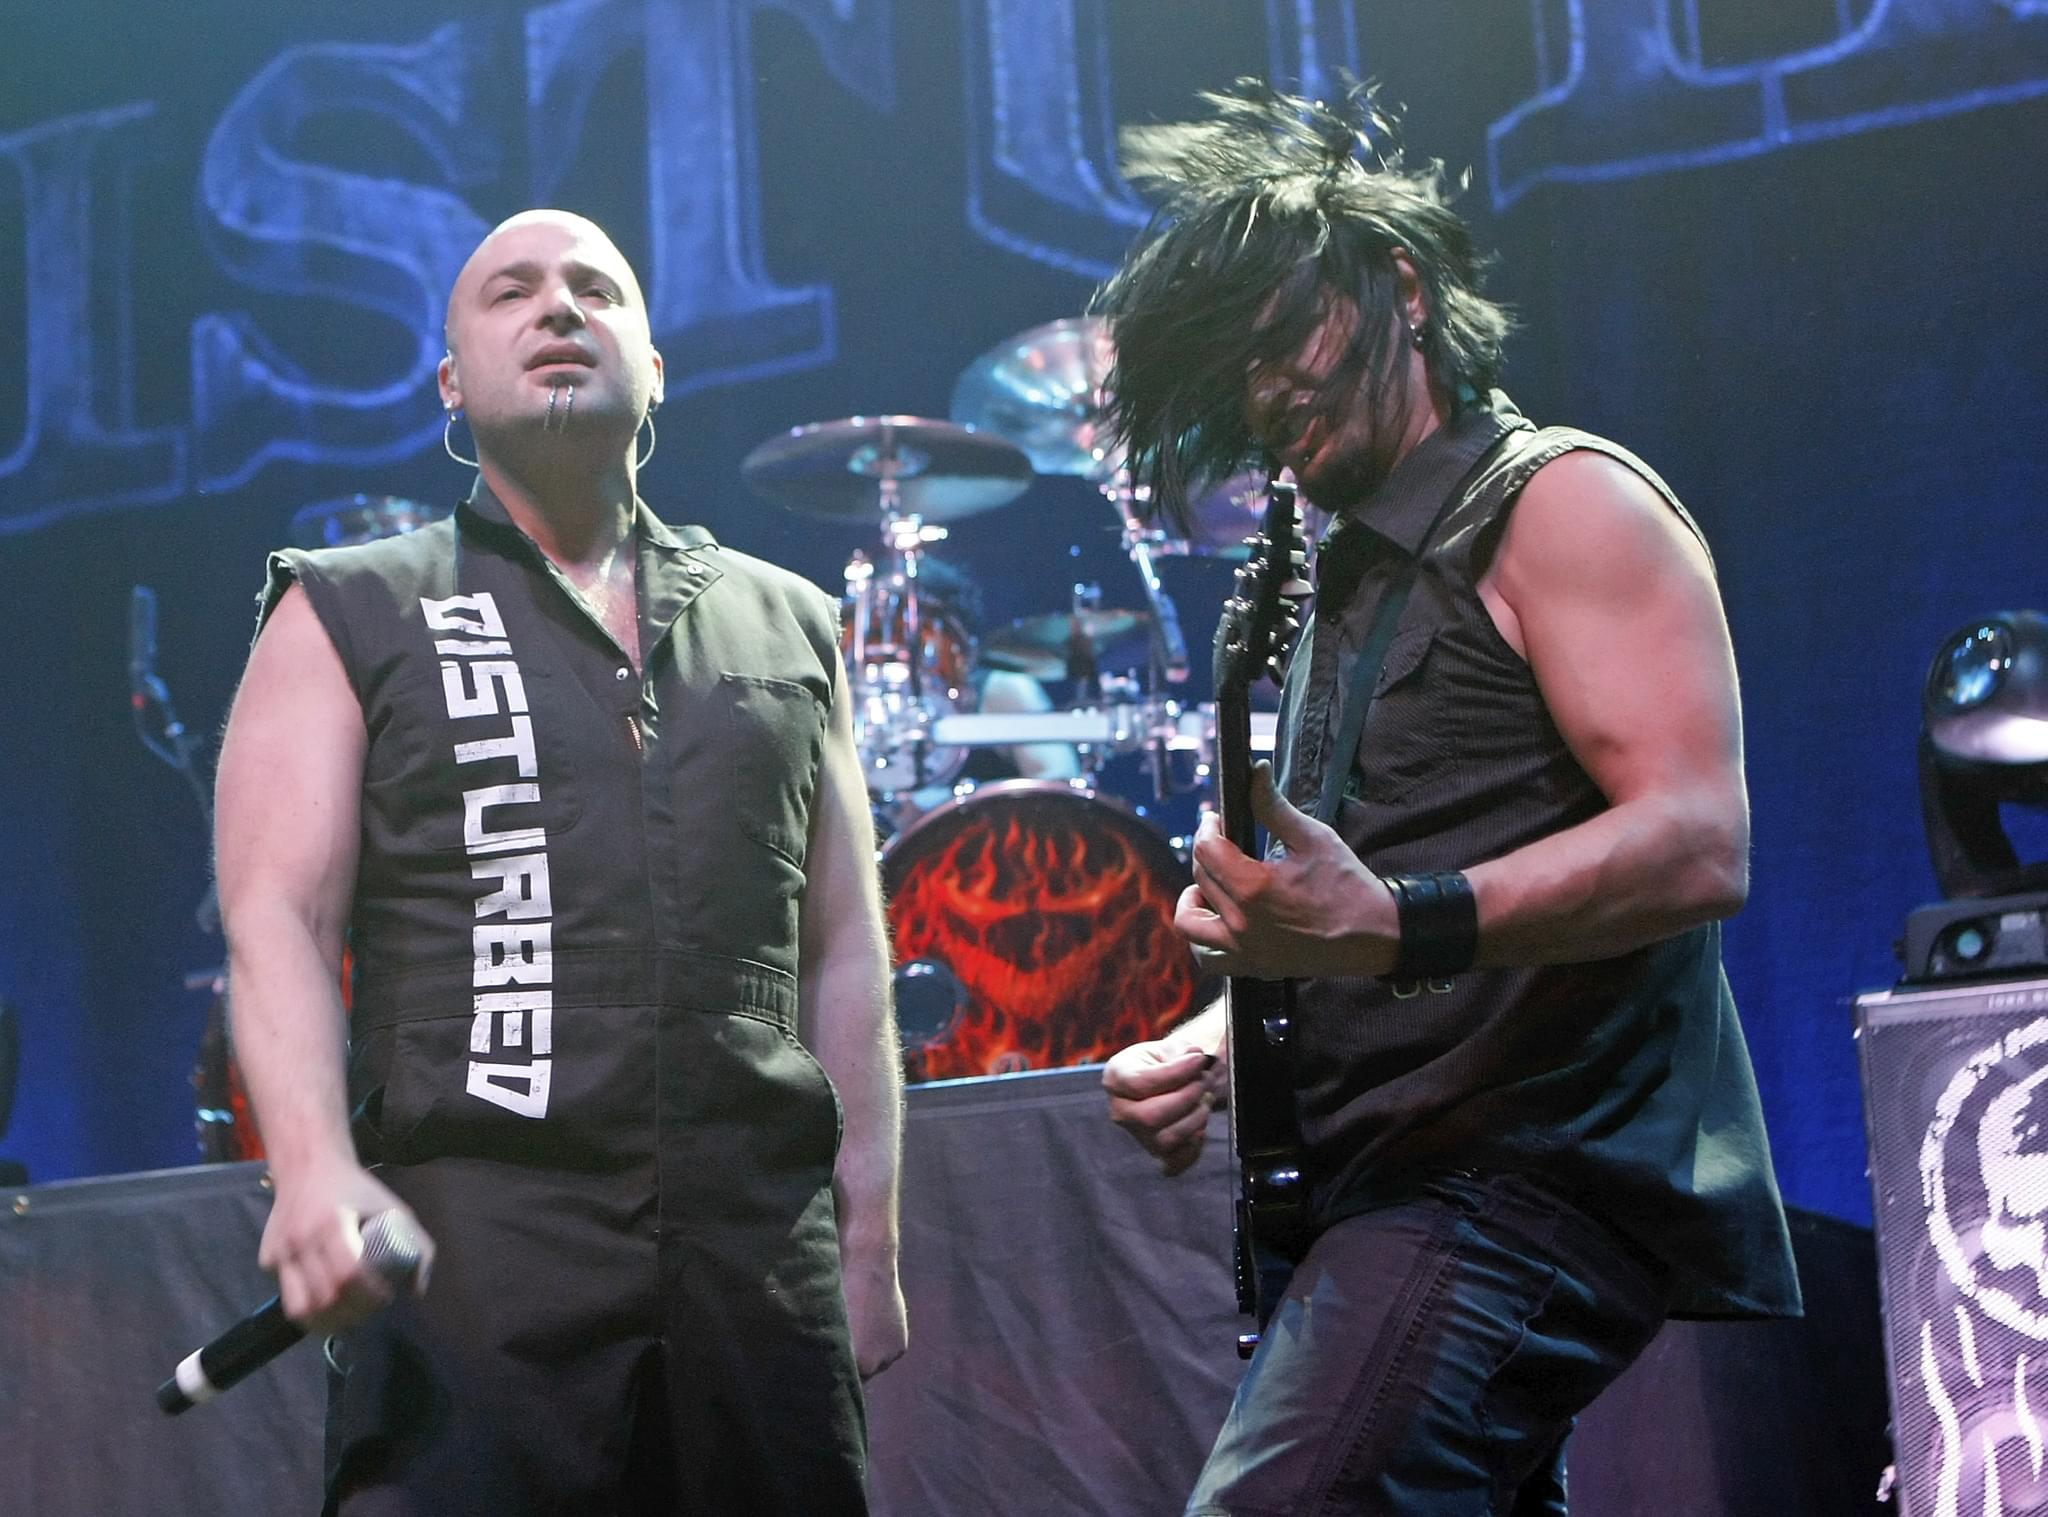 NEW! DISTURBED ALBUM AND TOUR HEADING OUR WAY